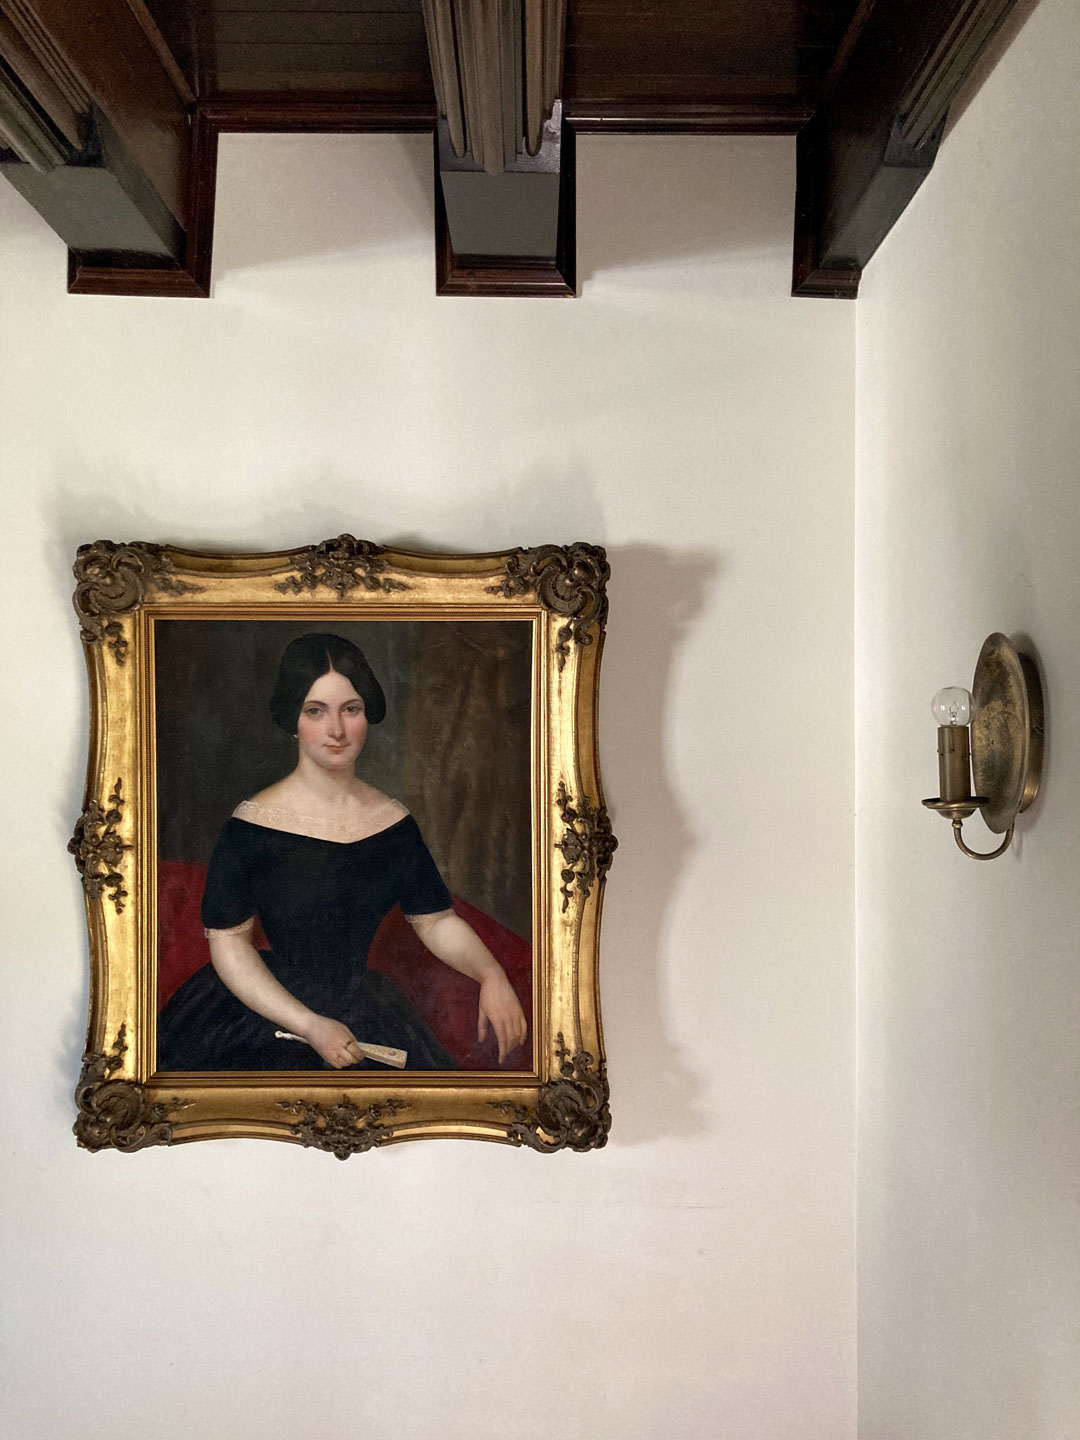 Antique frame restoration antique frame repair Frame touch up Painting conservation Painting of female with fan Nineteenth century portrait Gold leaf frame treatment cleaning of gilt frames Victorian frames Art installation Museum framing Casting of moulding cast ornamentation